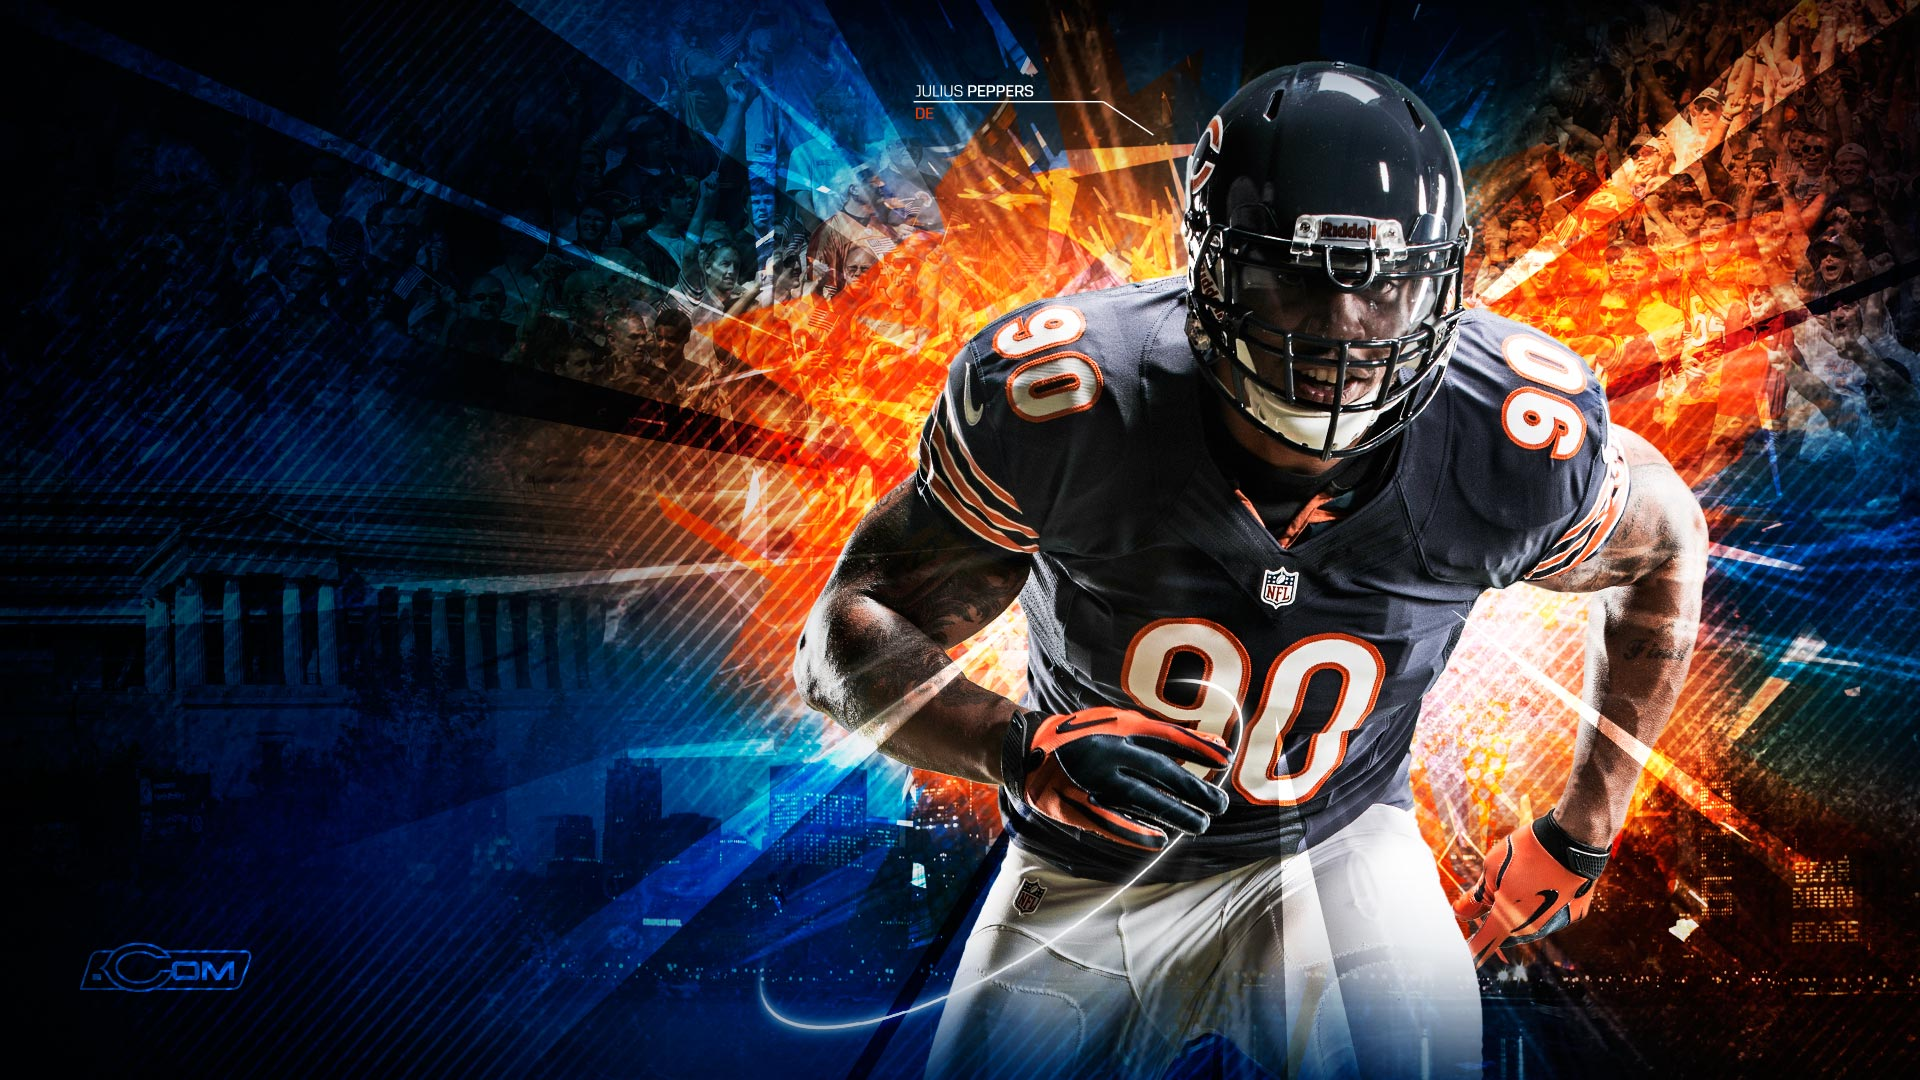 Chicago Bears 2012 wallpaper 1920x1080